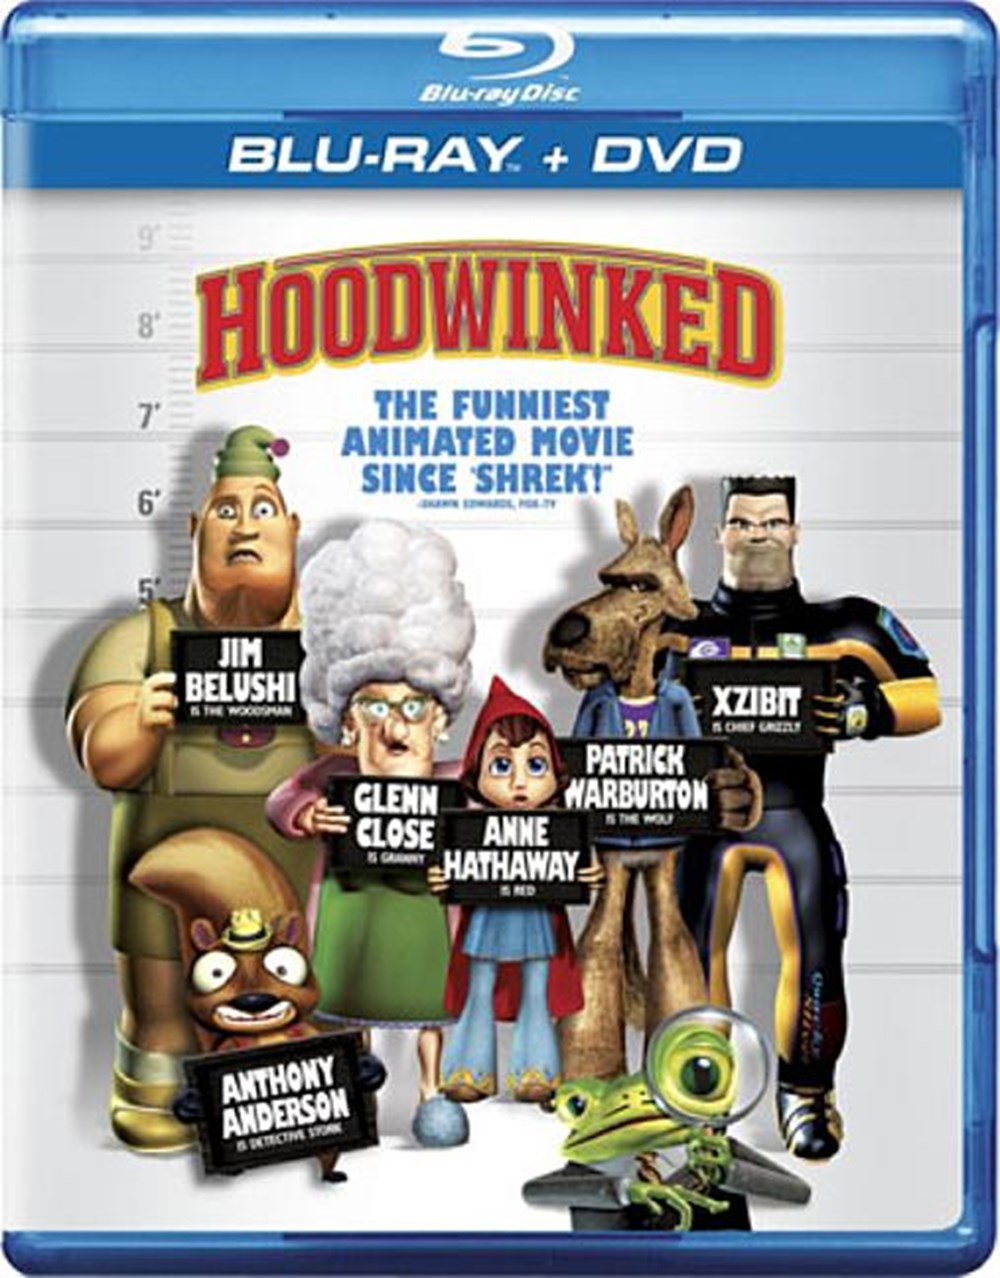 Hoodwinked (DVD Included)